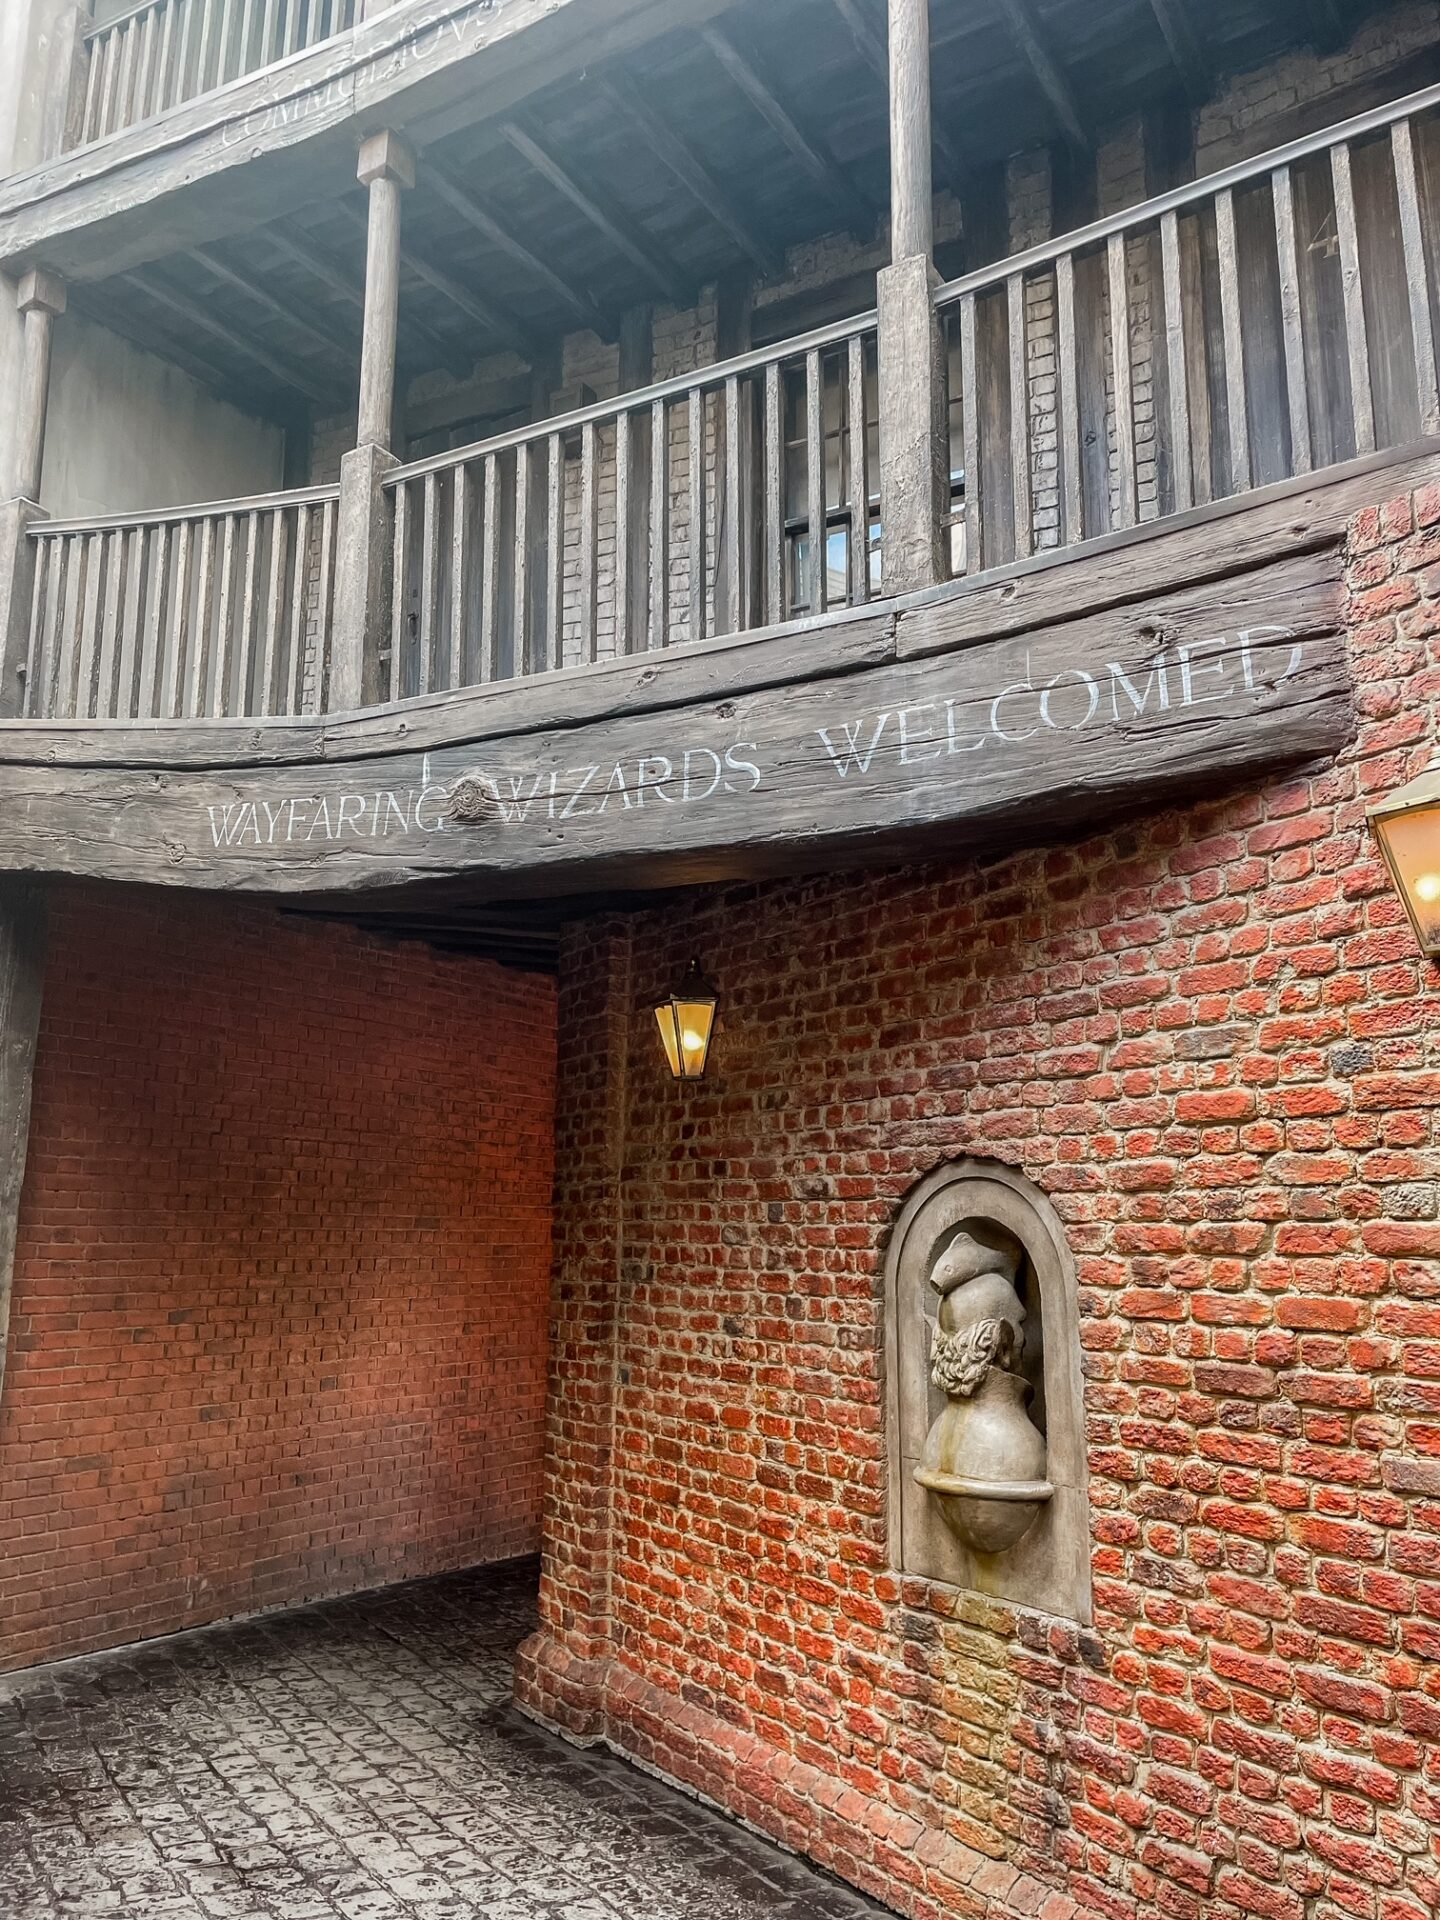 Diagon Alley - 10 Must-See Spots at Harry Potter World in Universal Orlando!